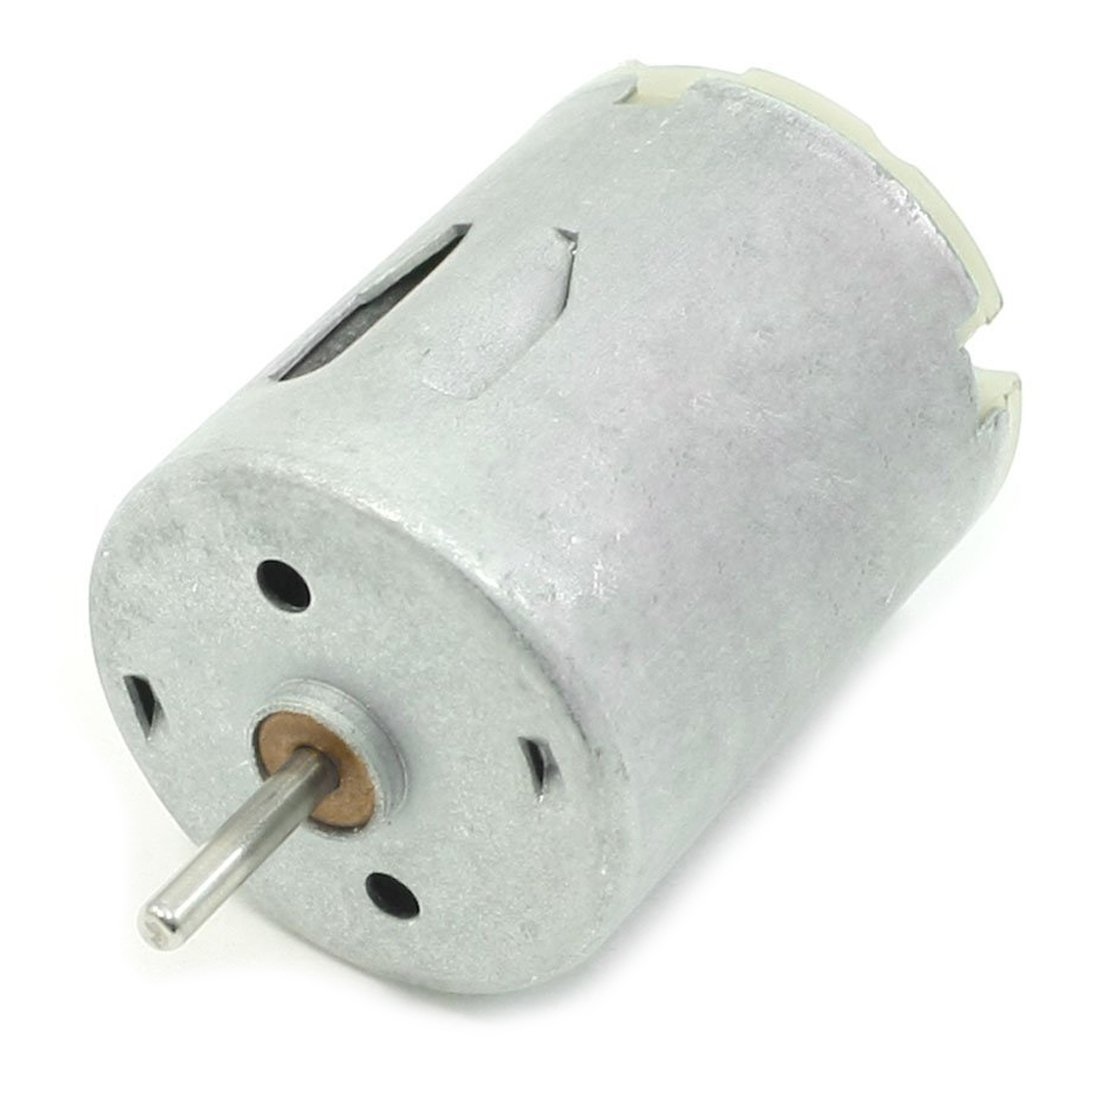 20000 RPM DC Motor - TOOGOO(R) DC 9V 20000RPM Rotary Speed Cylinder Shape Magnetic Motor, Silver Gray